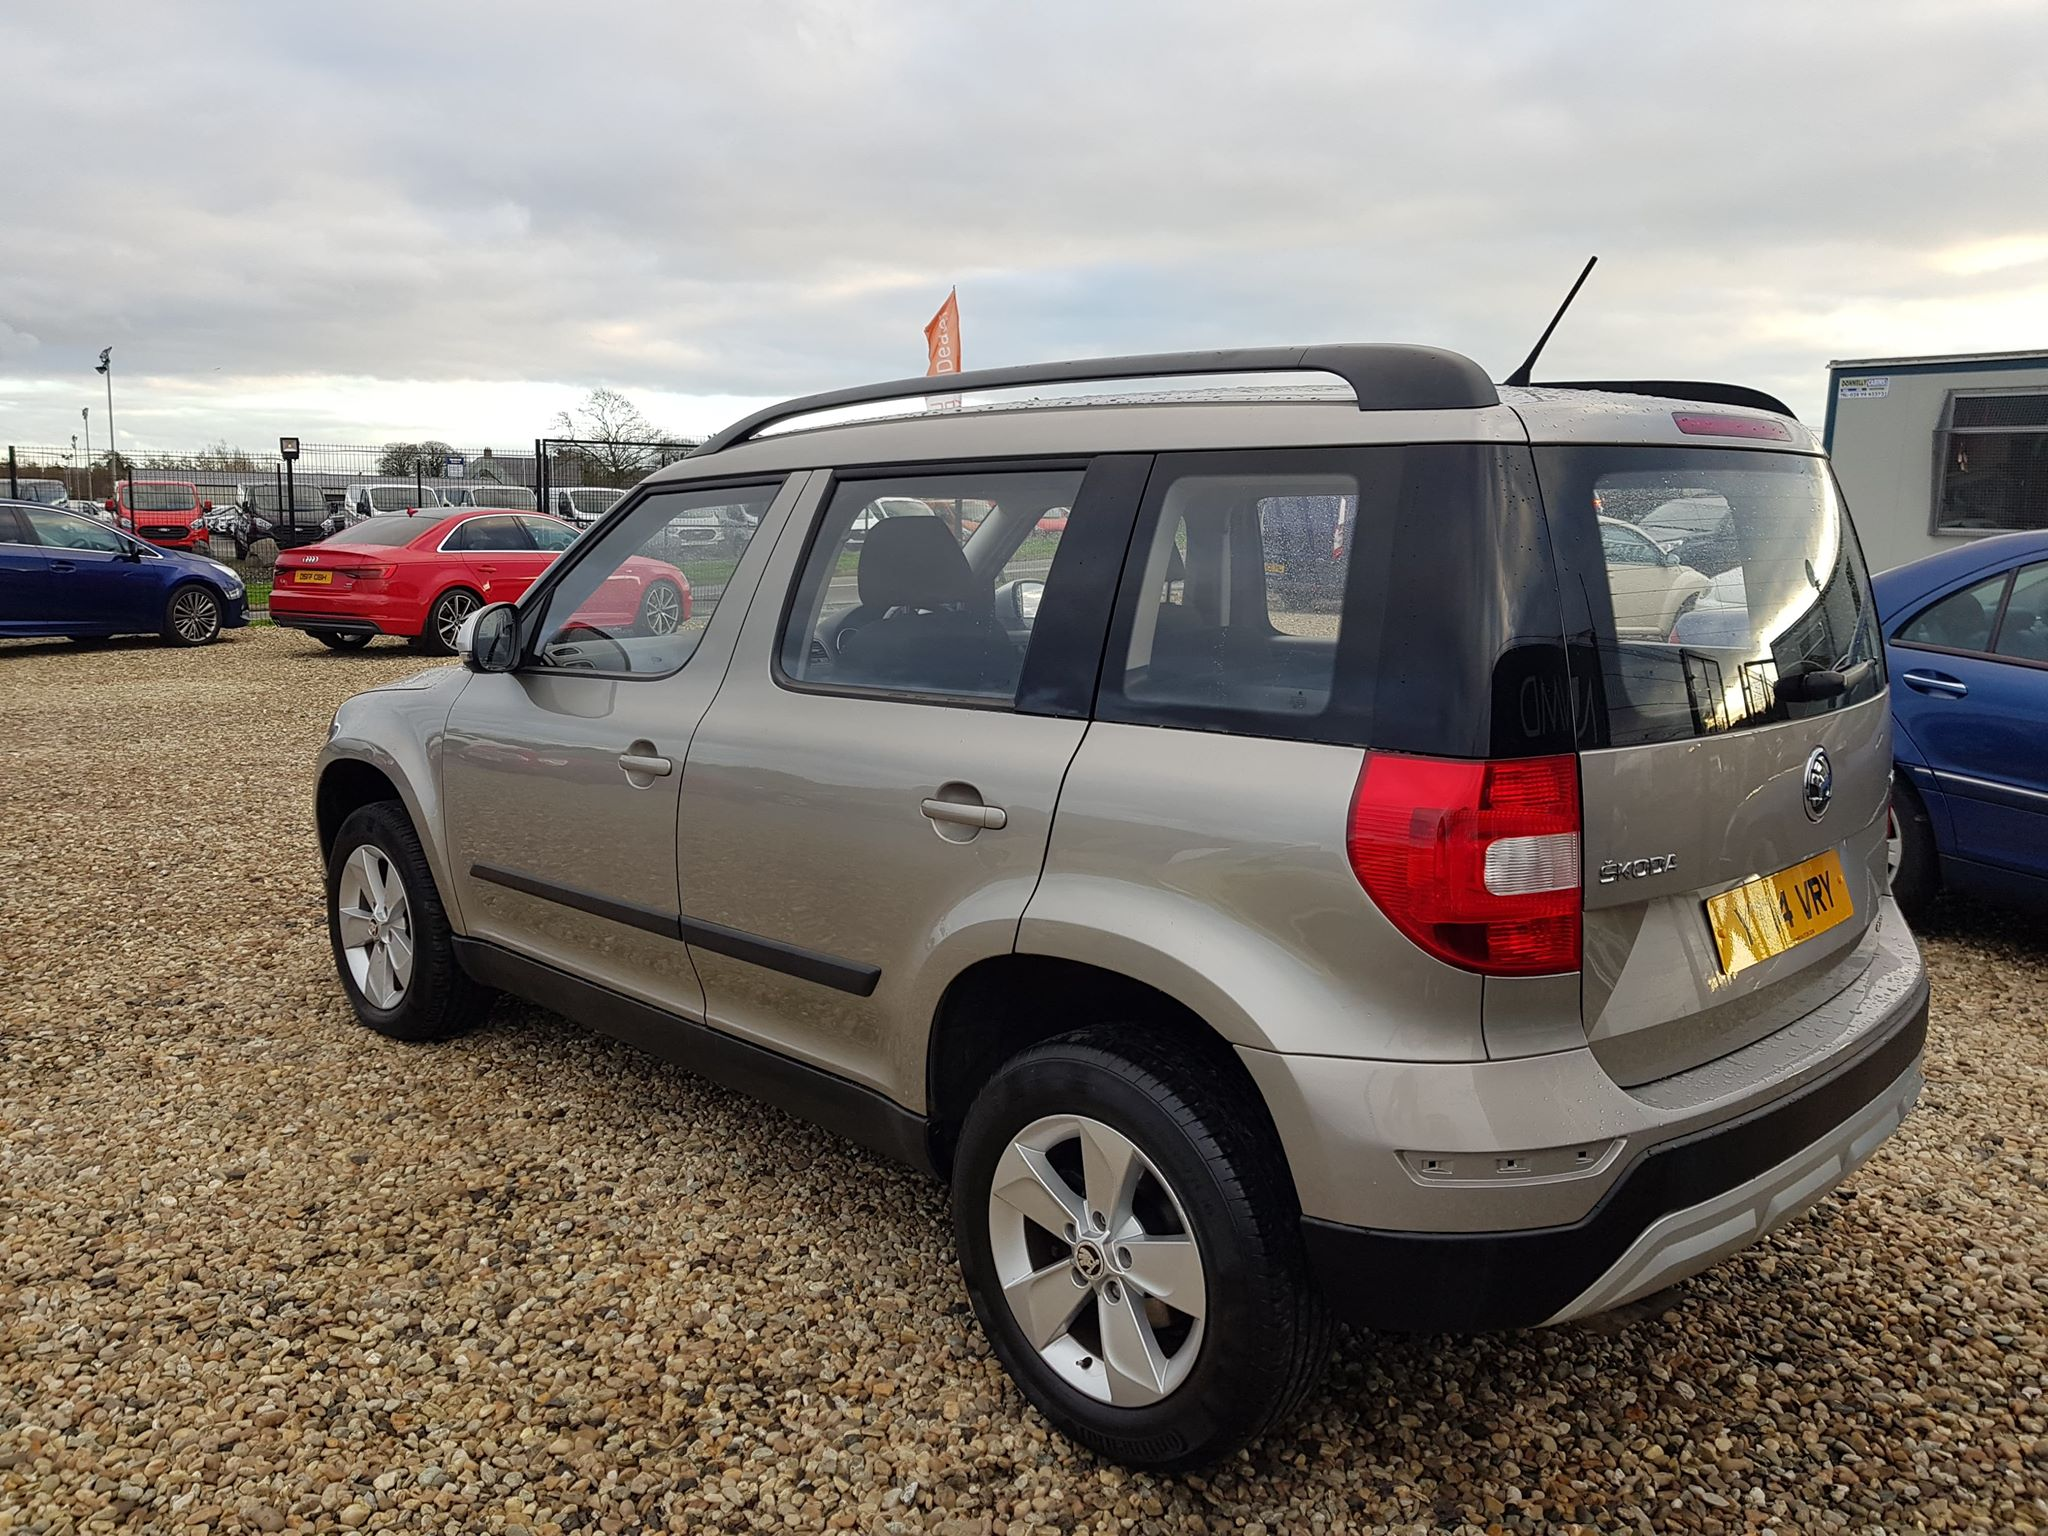 2014 Skoda Yeti Outdoor S Tdi Cr 4x4 | Used Cars Derry Donegal